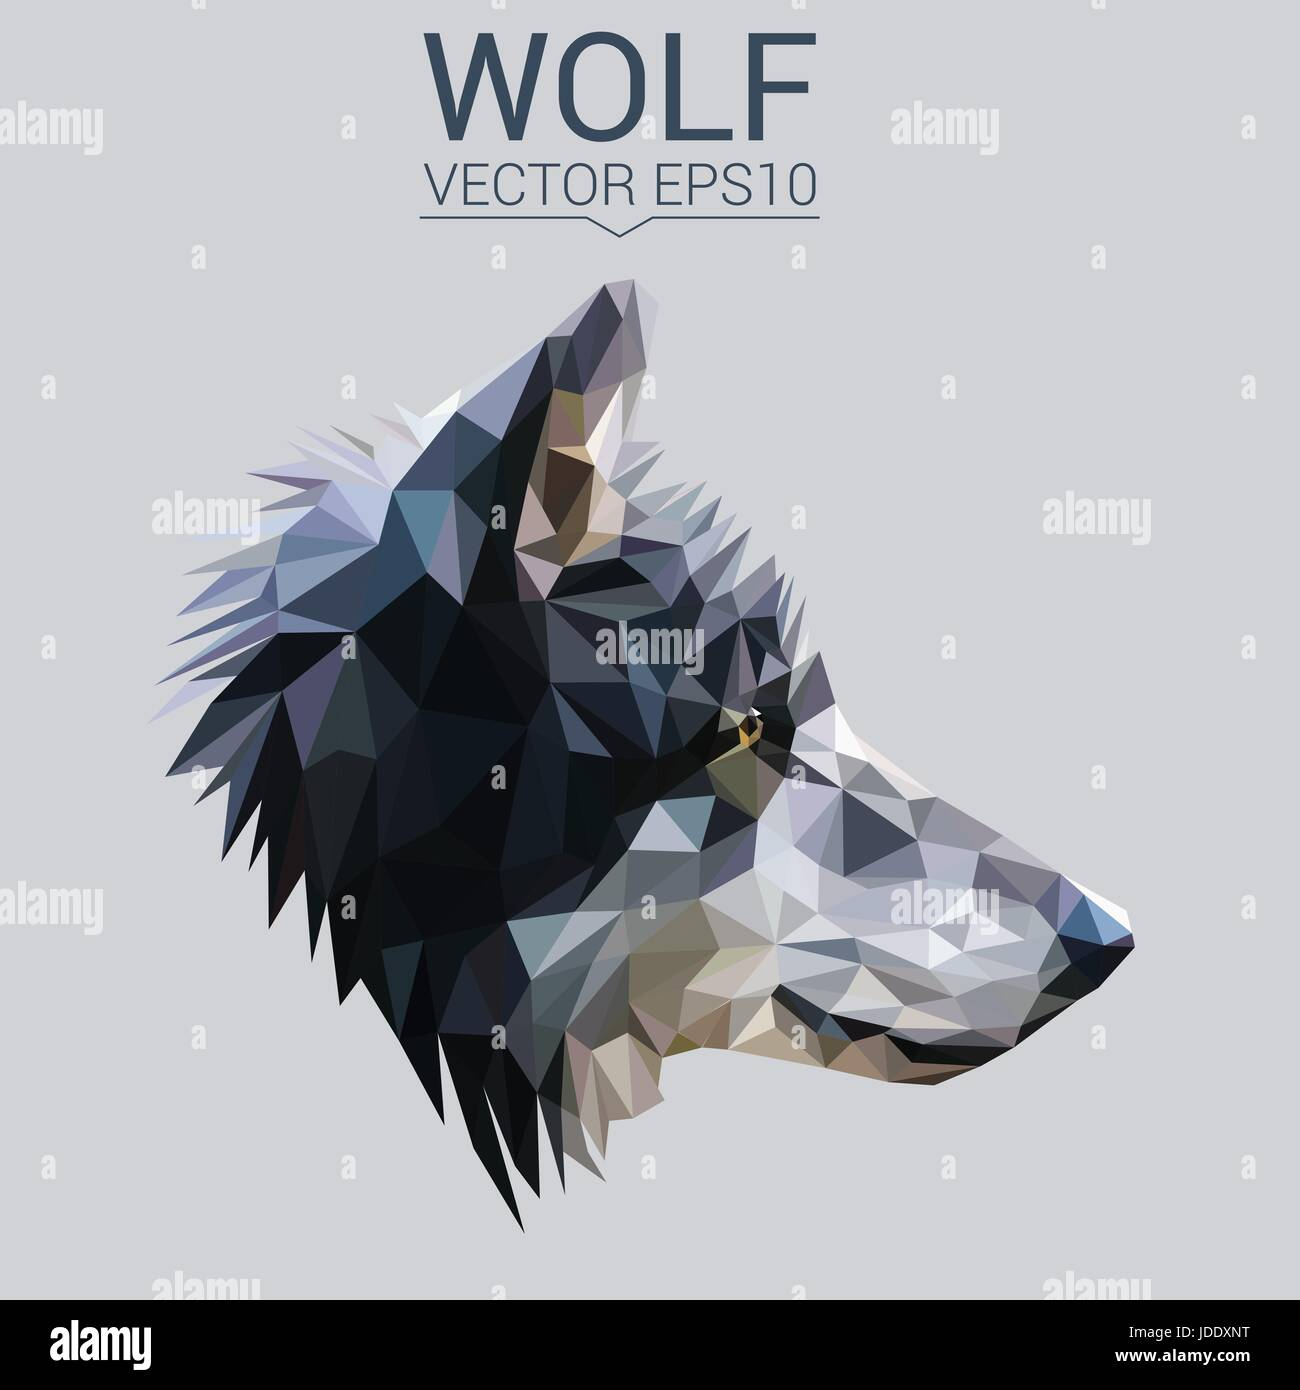 Wolf low poly design. - Stock Vector